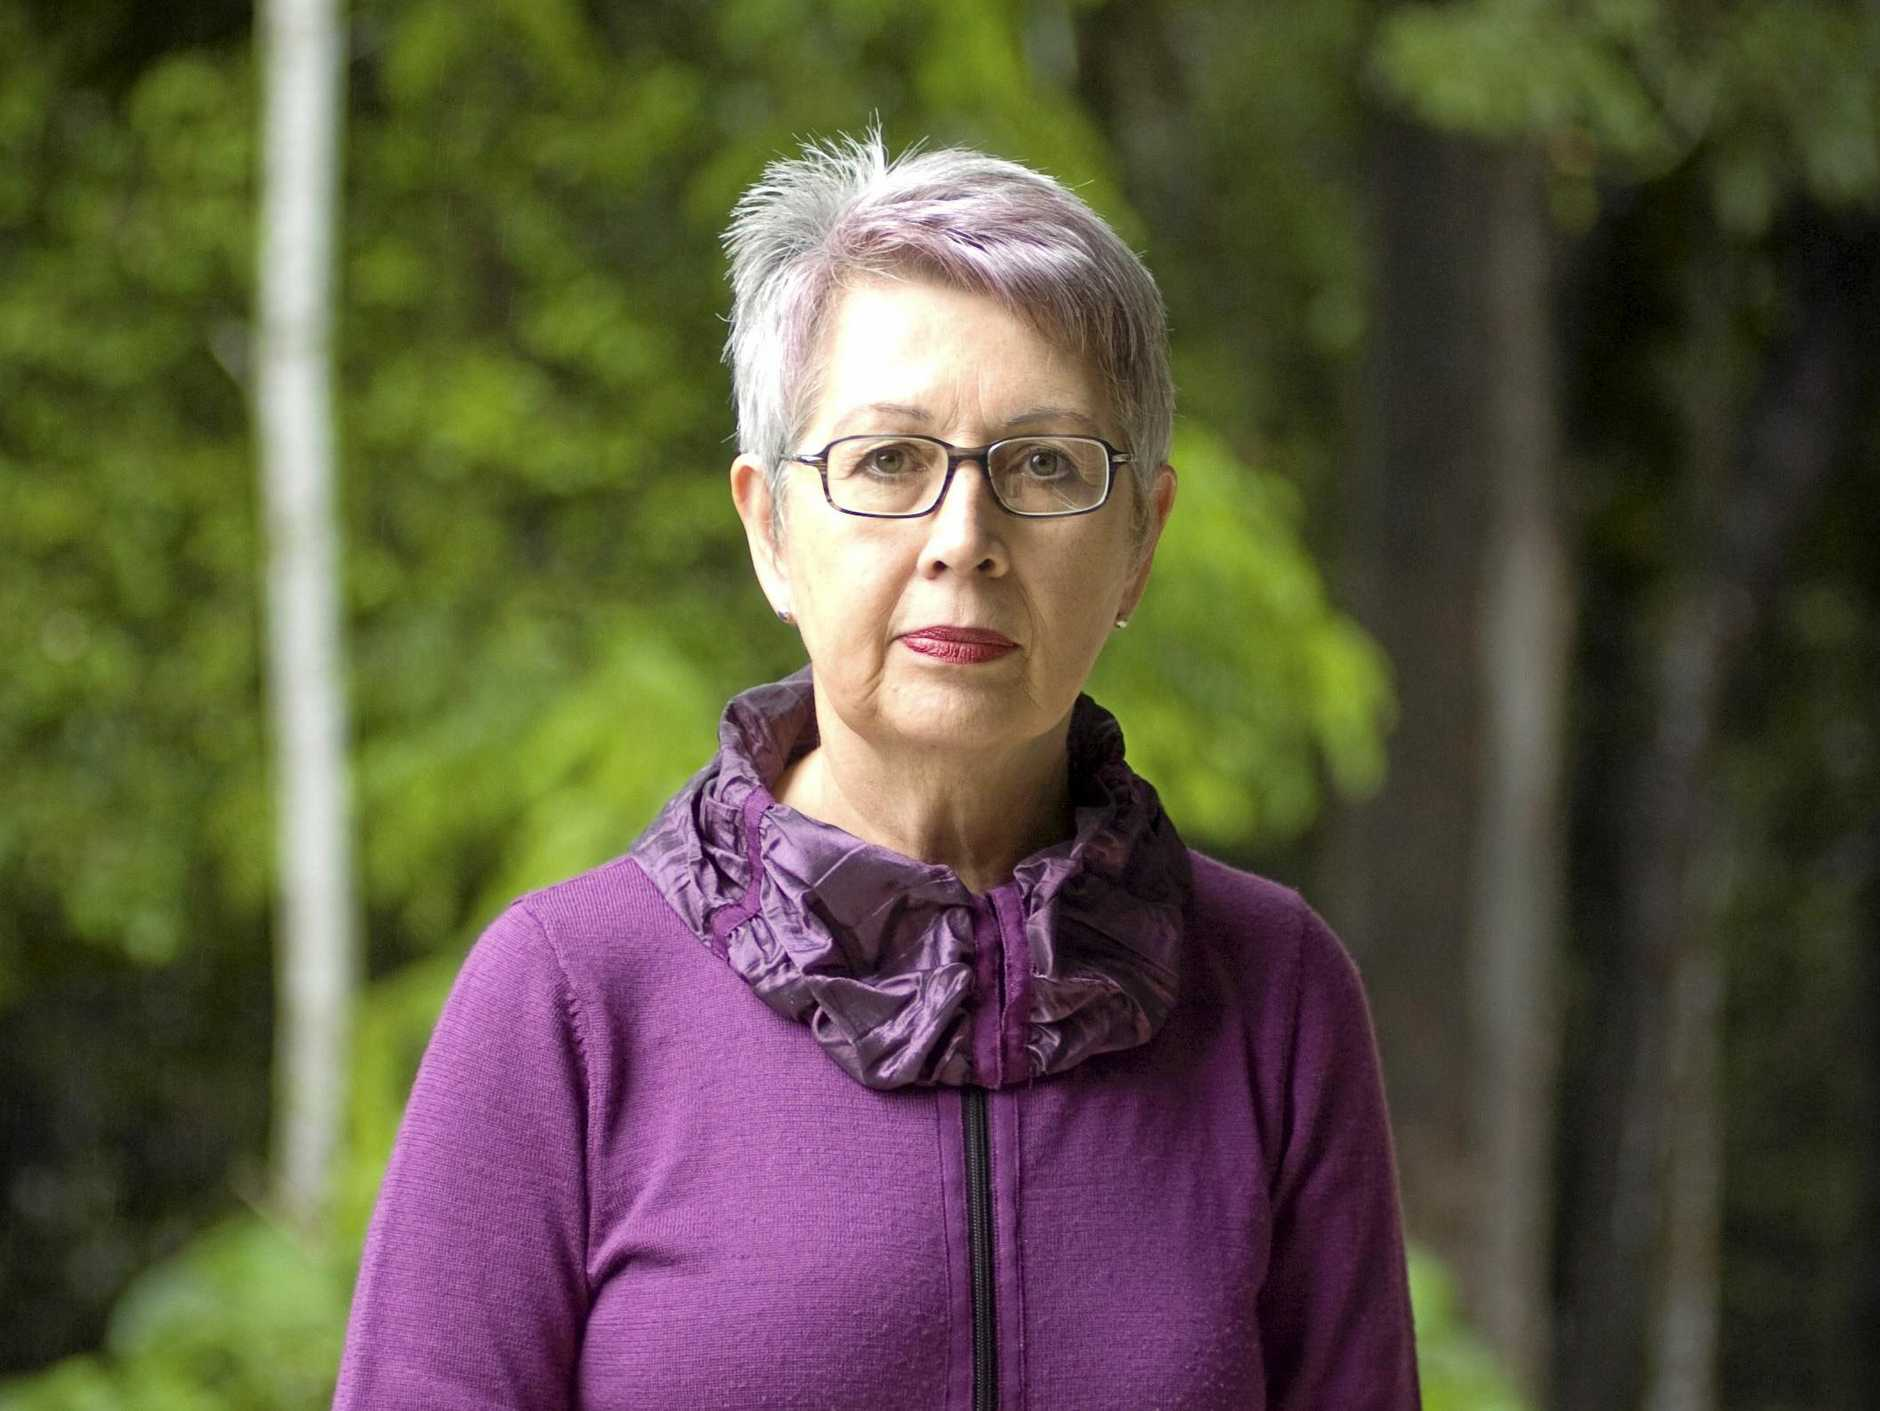 Former mayor of Lismore Jenny Dowell voiced her concerns about comments made by Universal Medicine leader Serge Benhayon in the NSW Supreme Court.